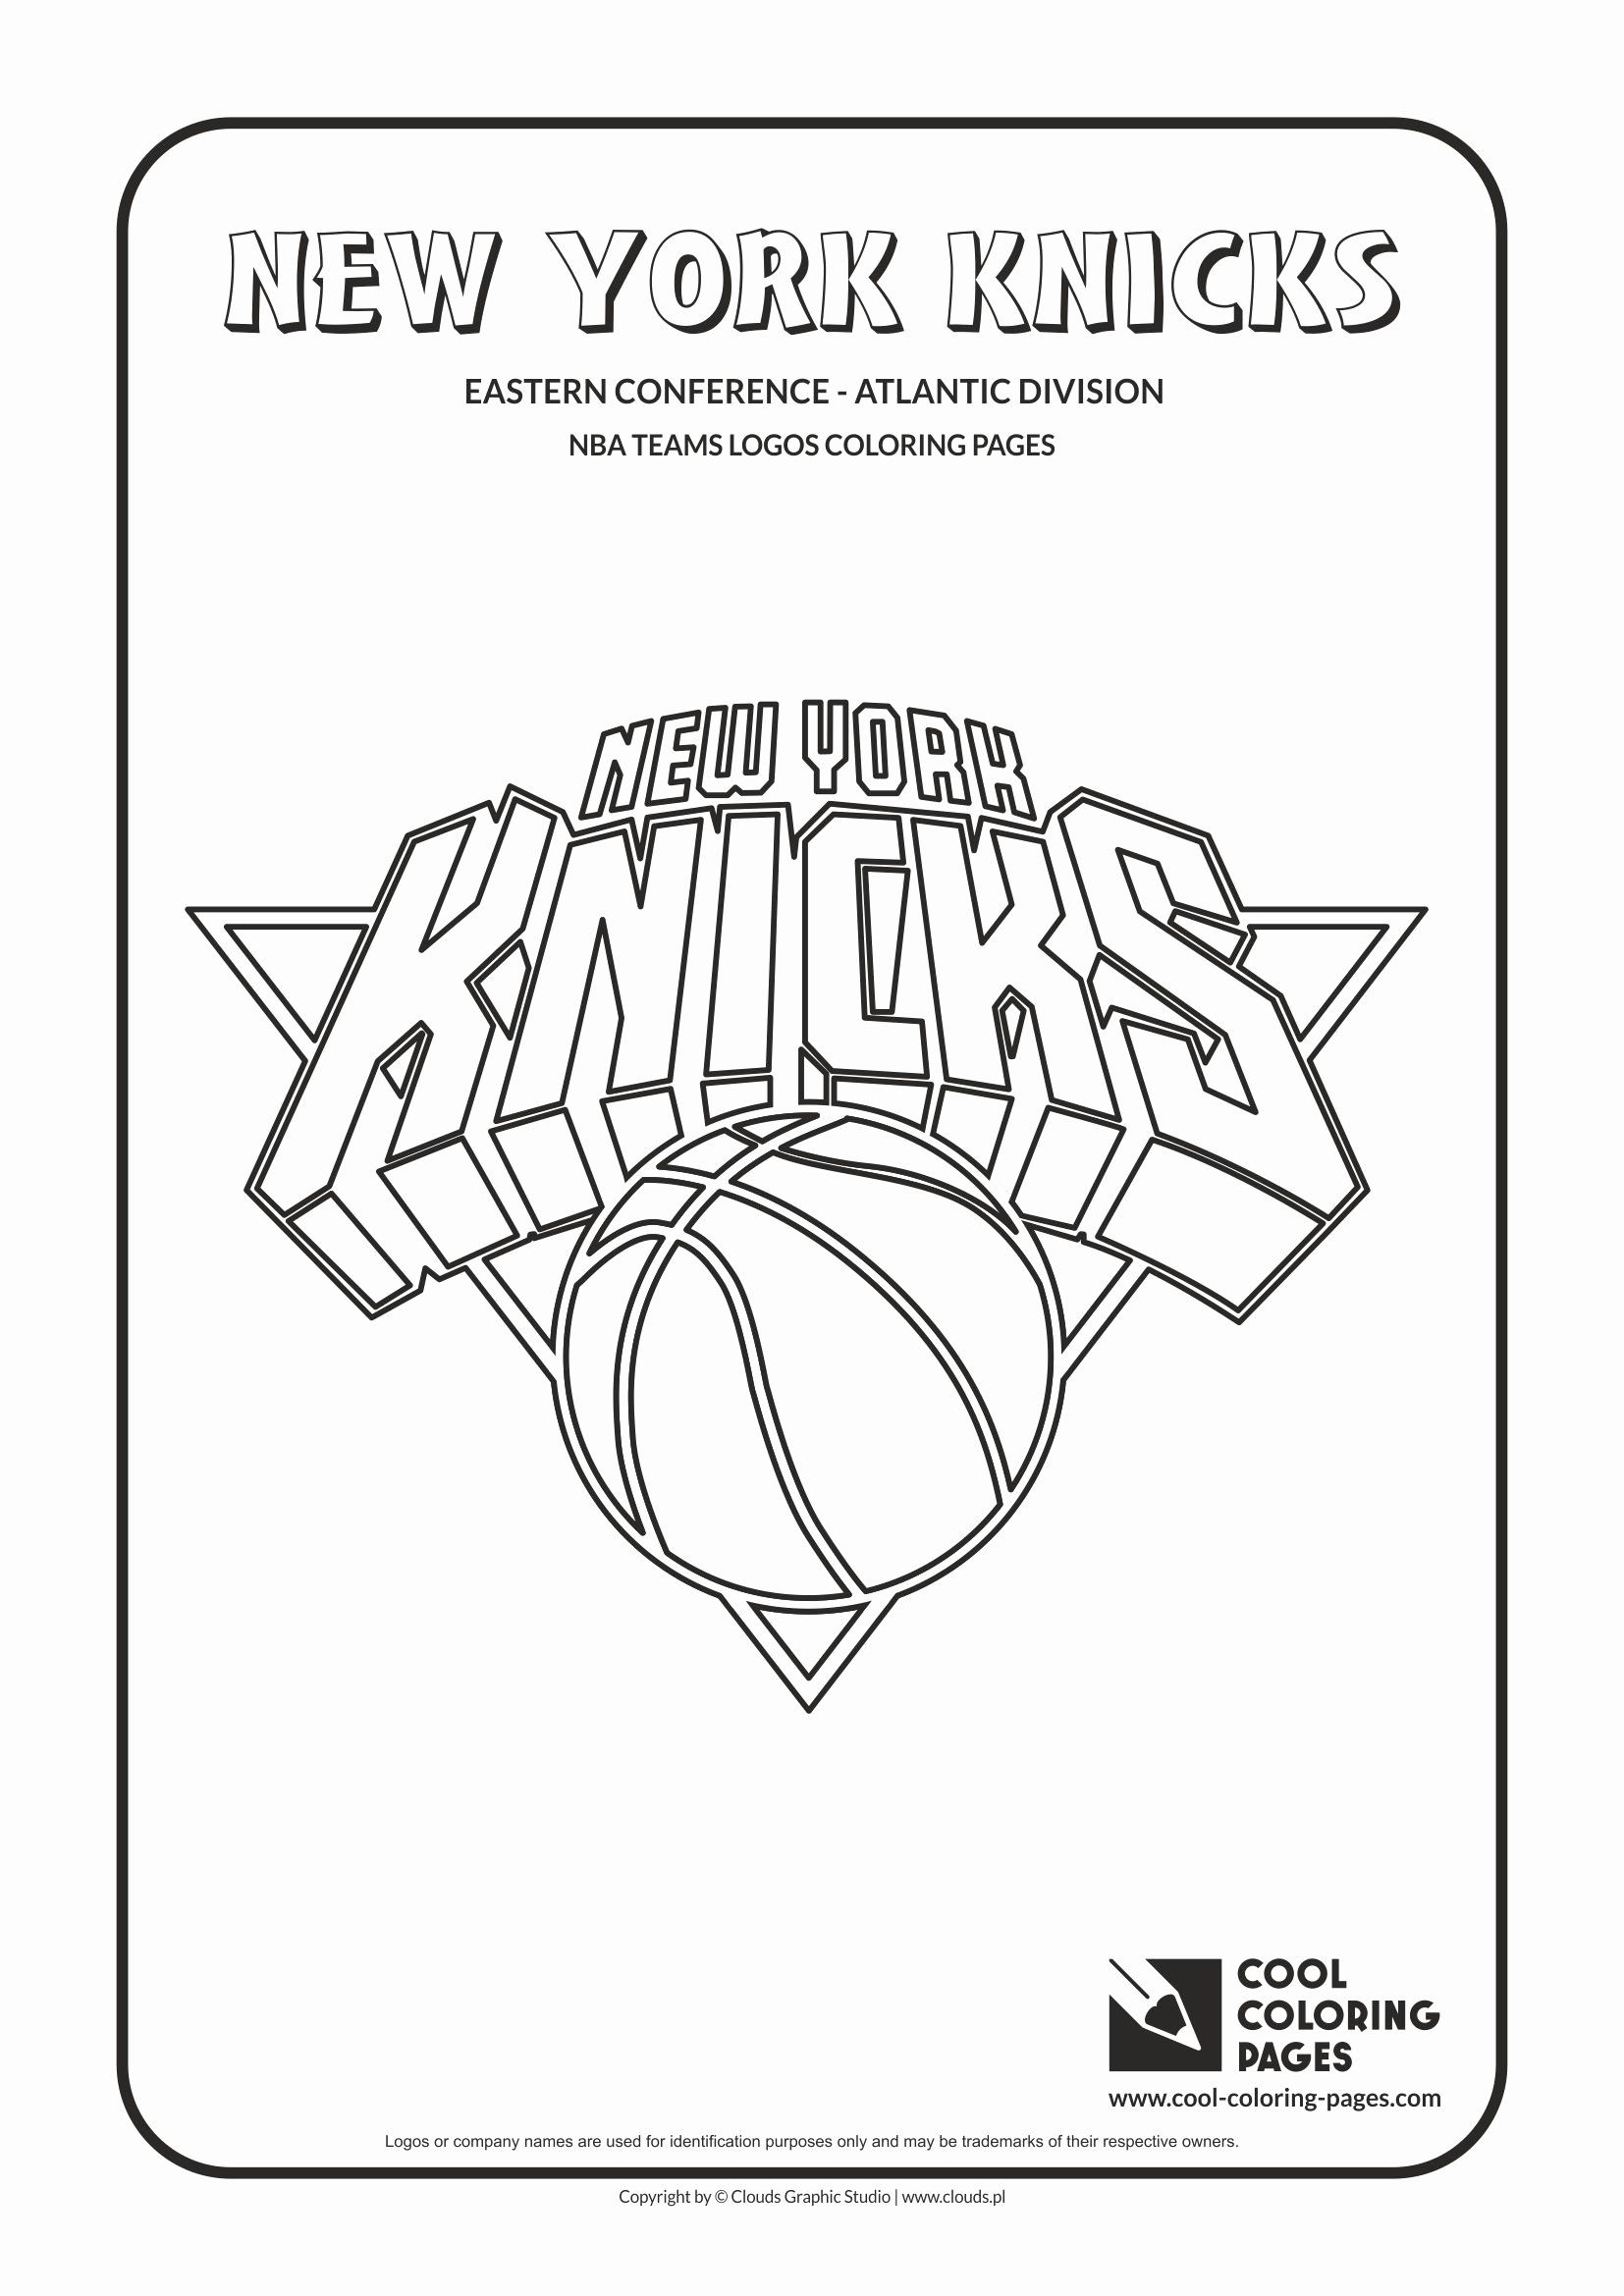 New York Coloring Books Luxury 31 Most Splendid Charlotter Bobcats Team Nba Coloring Pages In 2020 Cool Coloring Pages Coloring Pages Flag Coloring Pages